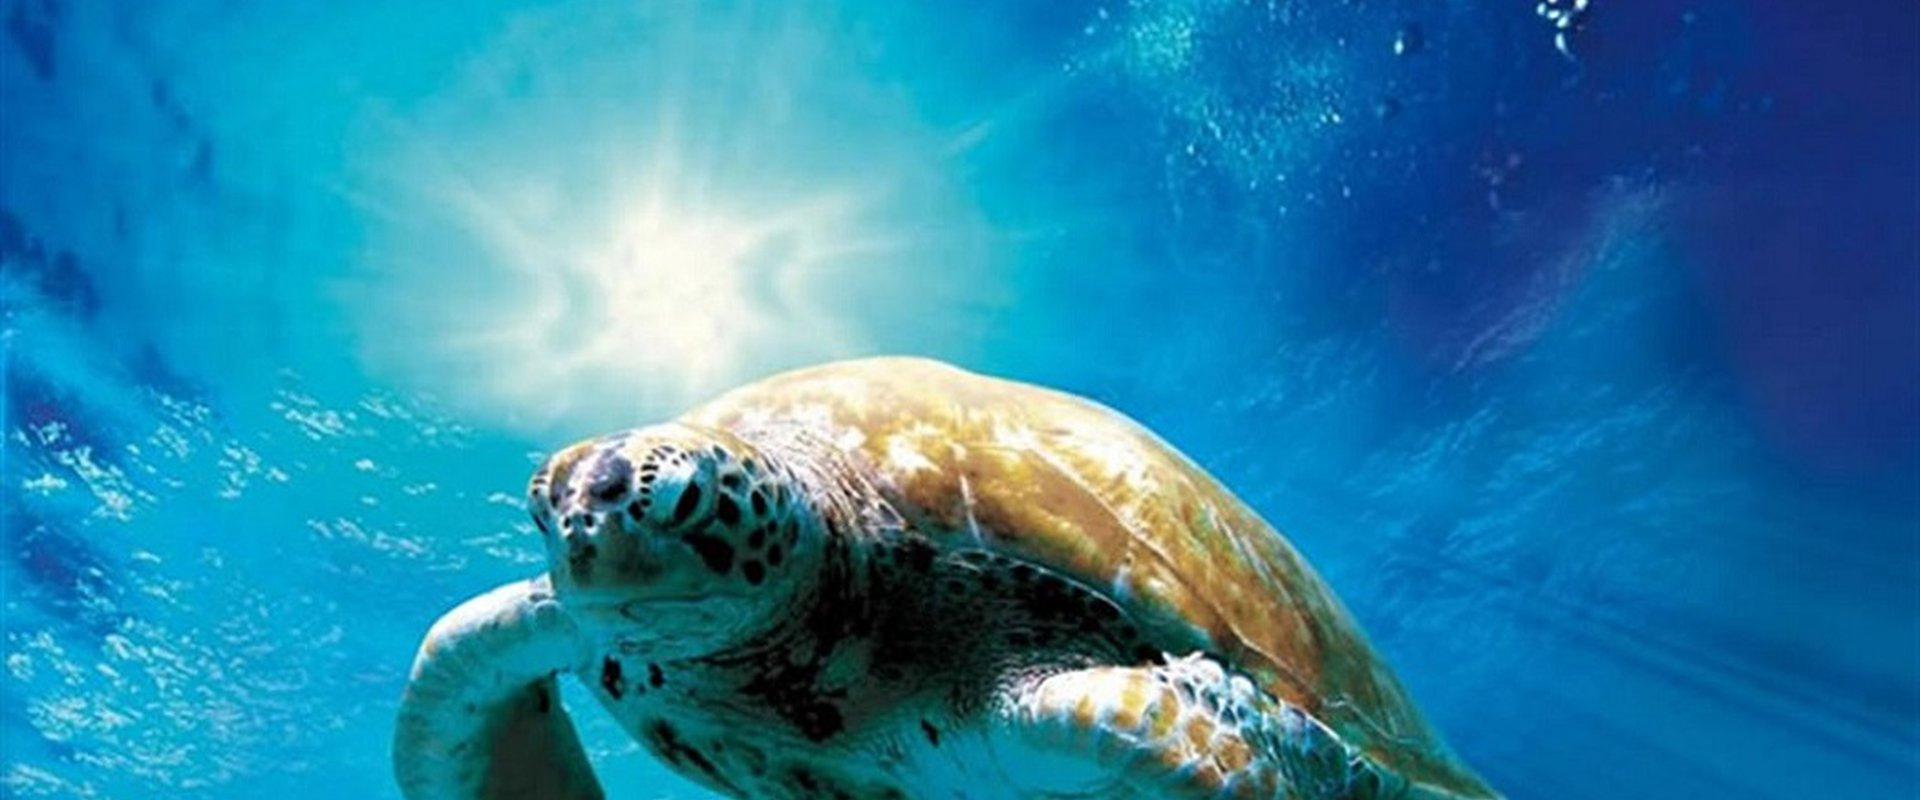 Turtles: The Incredible Journey